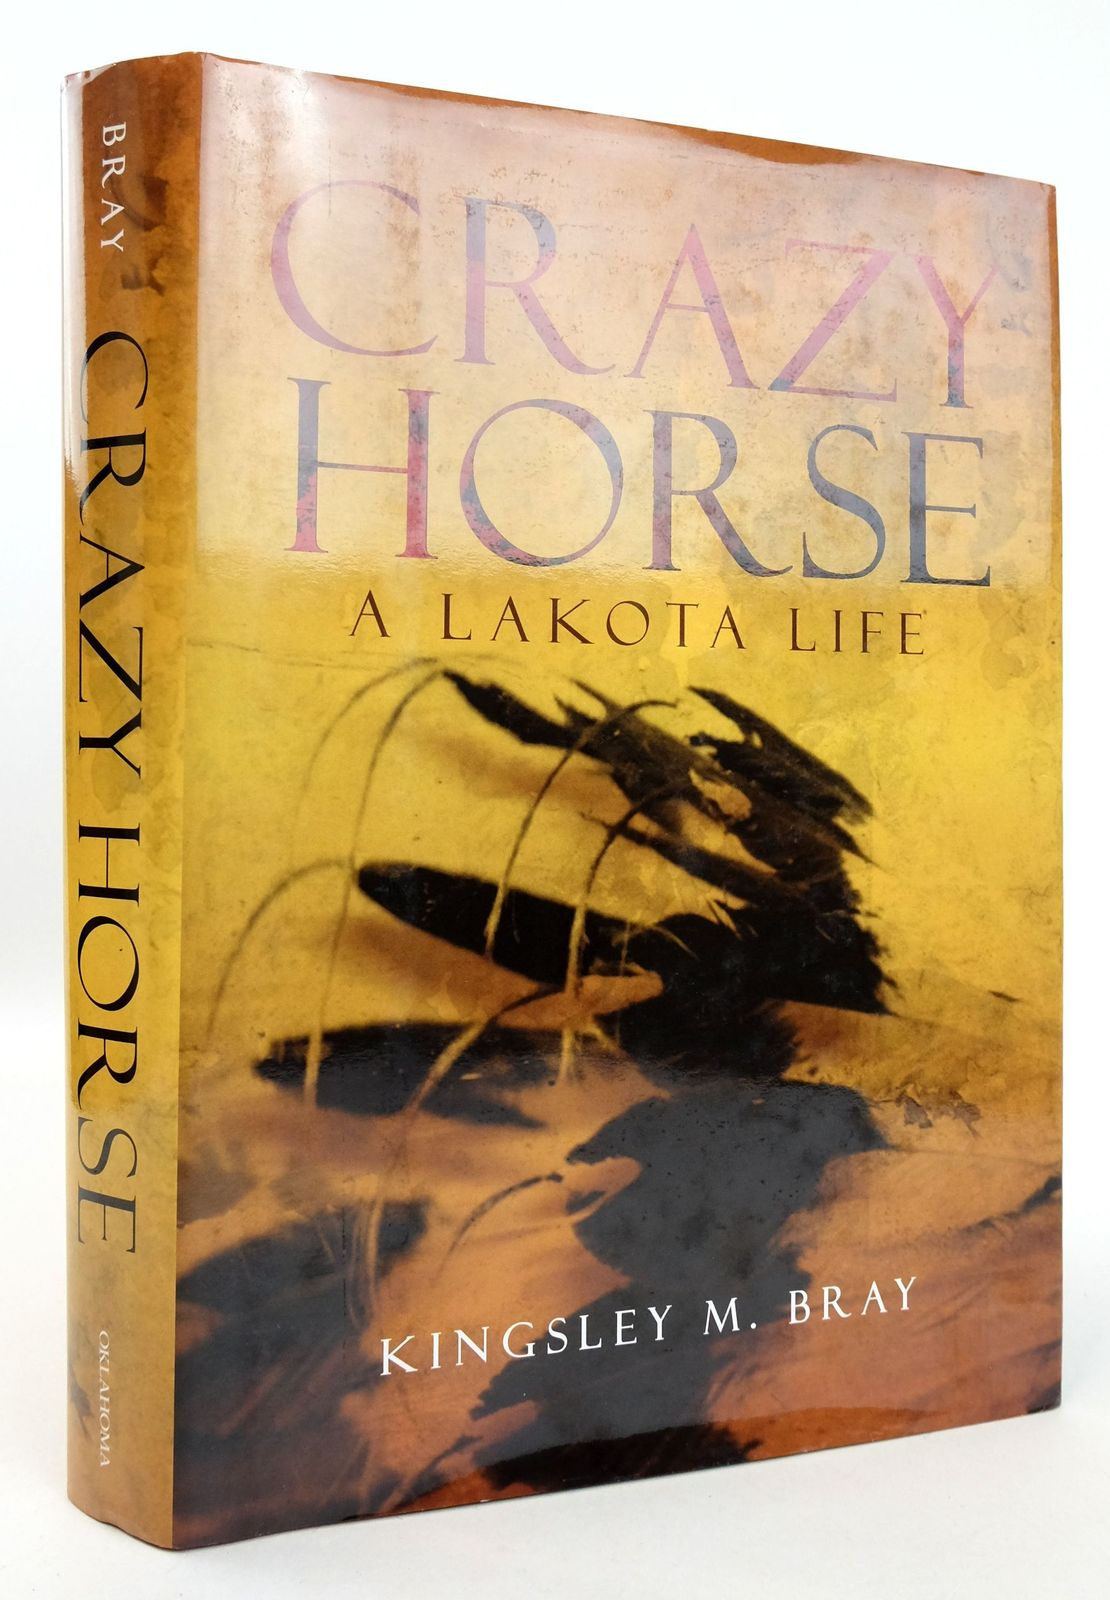 Photo of CRAZY HORSE: A LAKOTA LIFE- Stock Number: 1819277